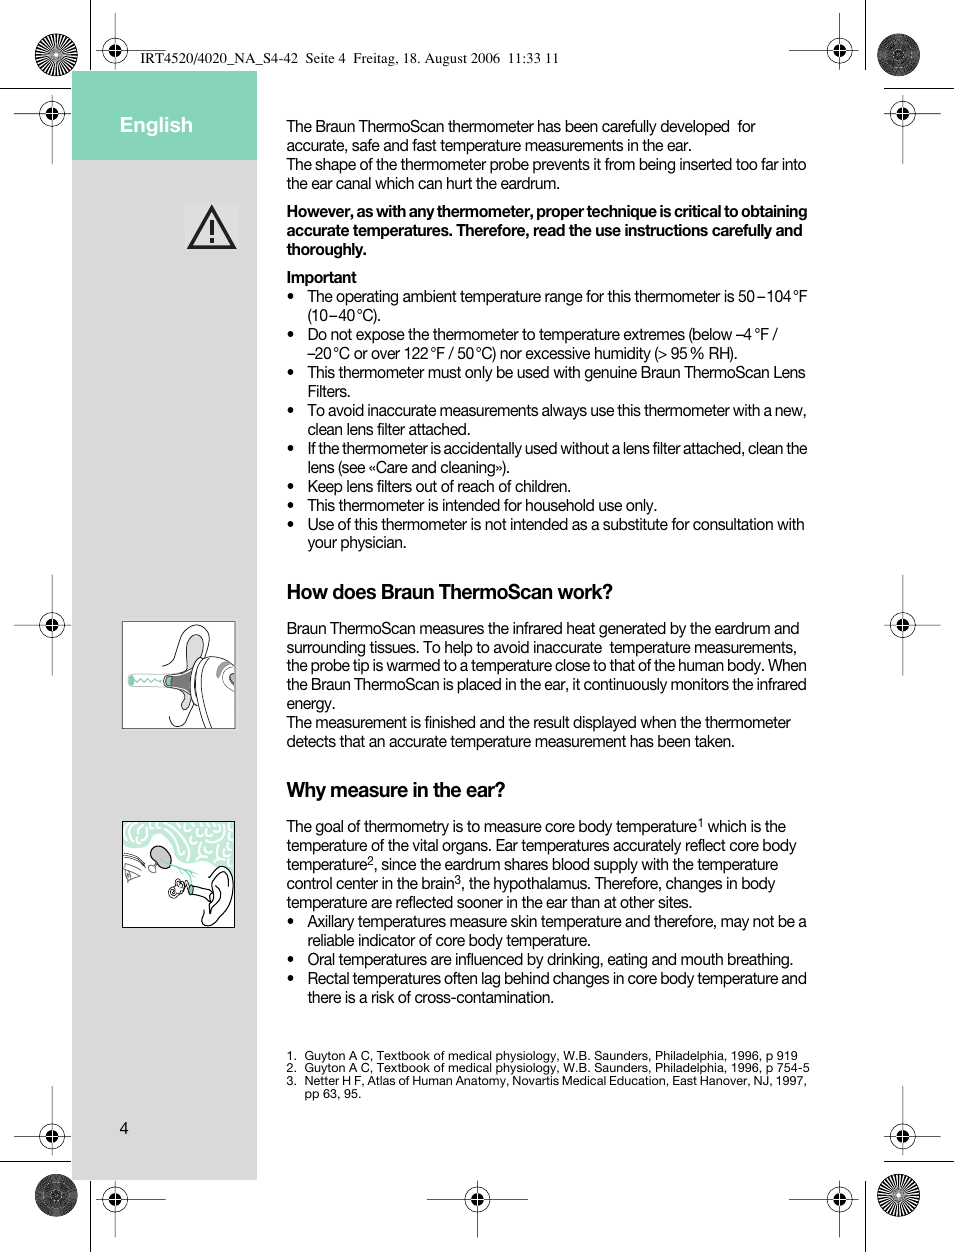 How does braun thermoscan work, Why measure in the ear, English | Braun  ThermoScan IRT 4520 User Manual | Page 4 / 42